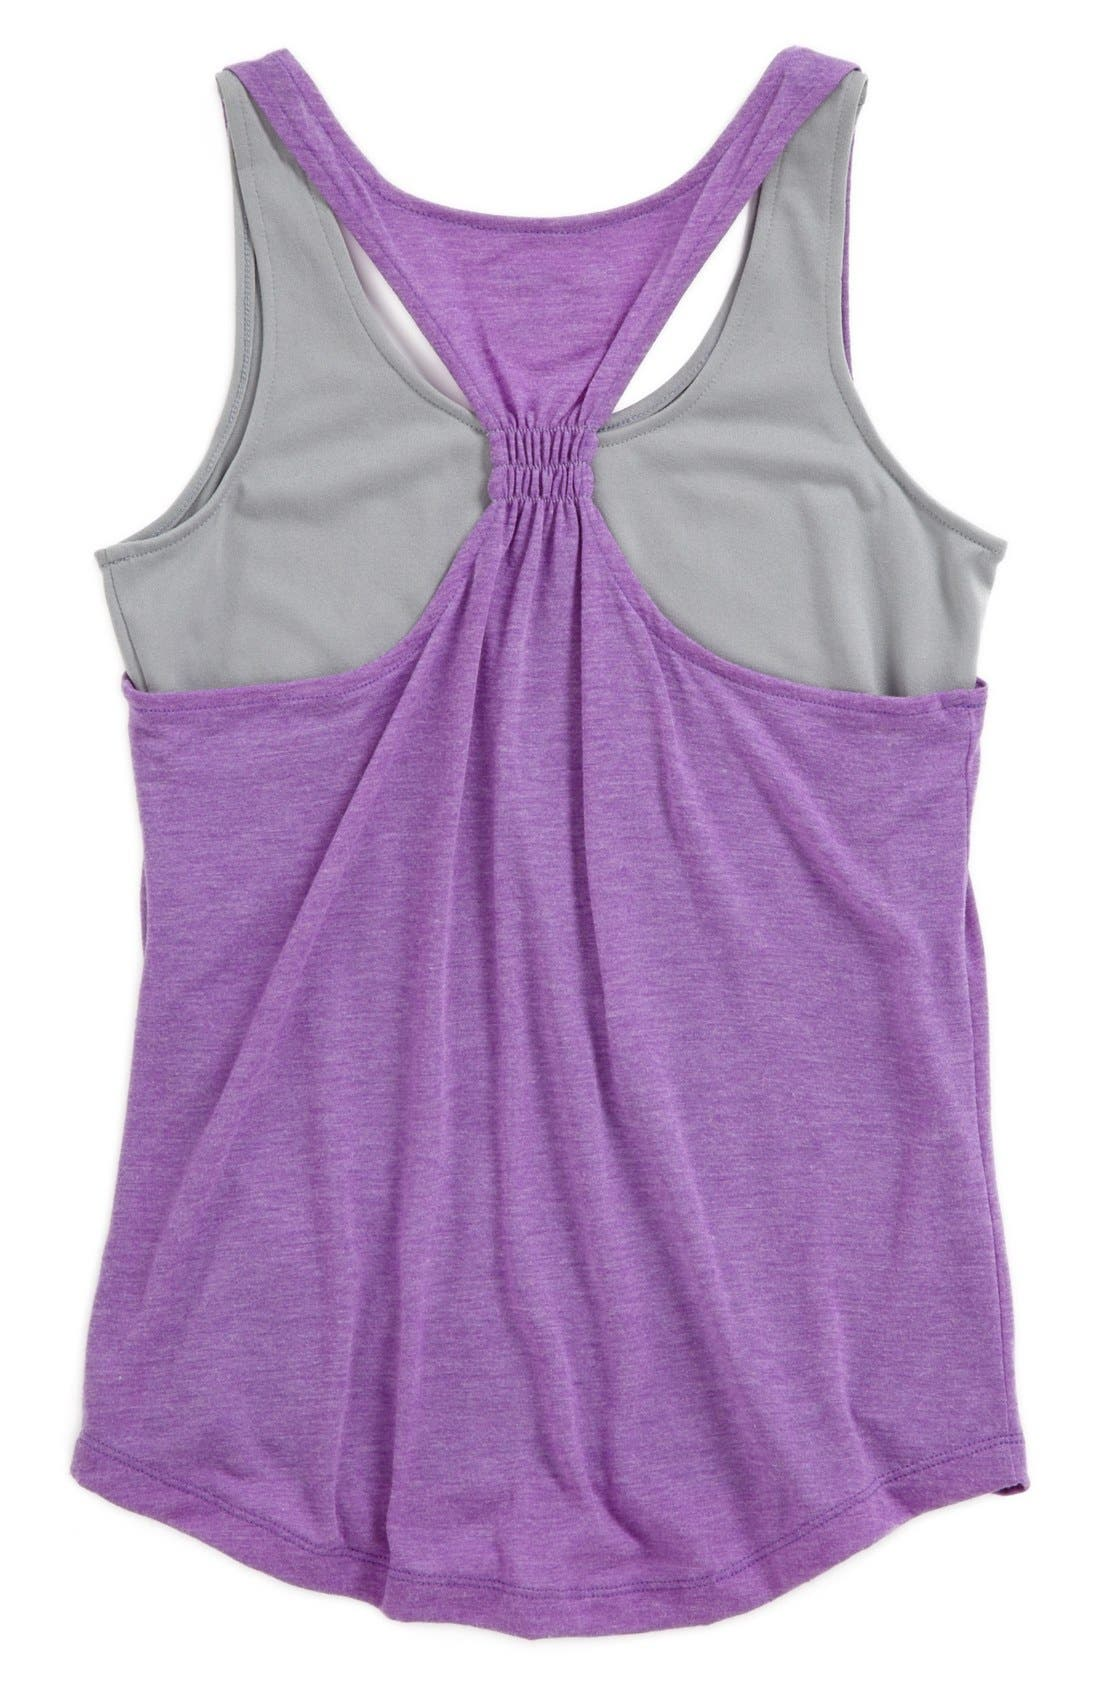 Alternate Image 2  - Under Armour 'Double the Fun' Tank Top (Big Girls)